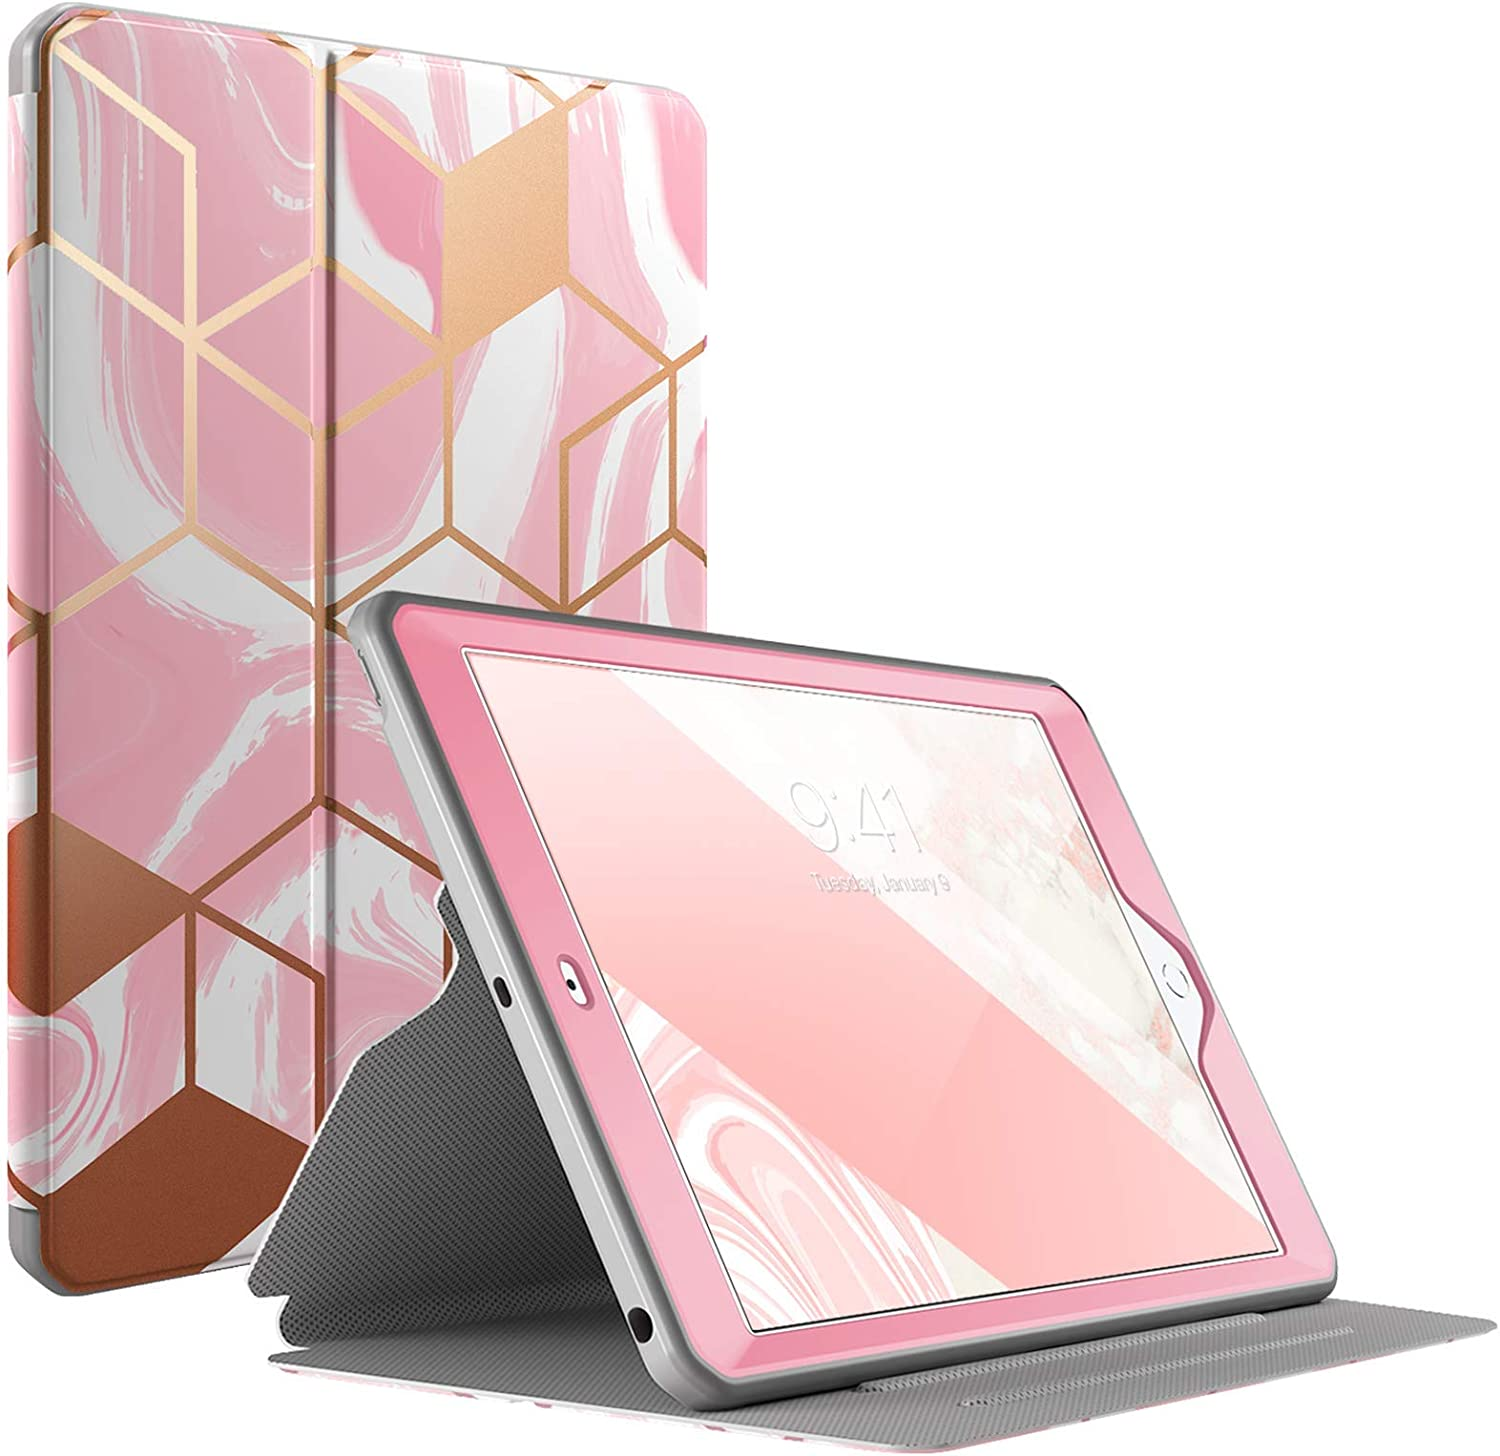 Popshine Marble Series Case for iPad 10.2 7th Generation 2019 / 8th Generation 2020 Case, Full Body Premium Stylish 360 Degree Protective Folio Cover with Built-in Screen Protector, Liquid Marble Pink